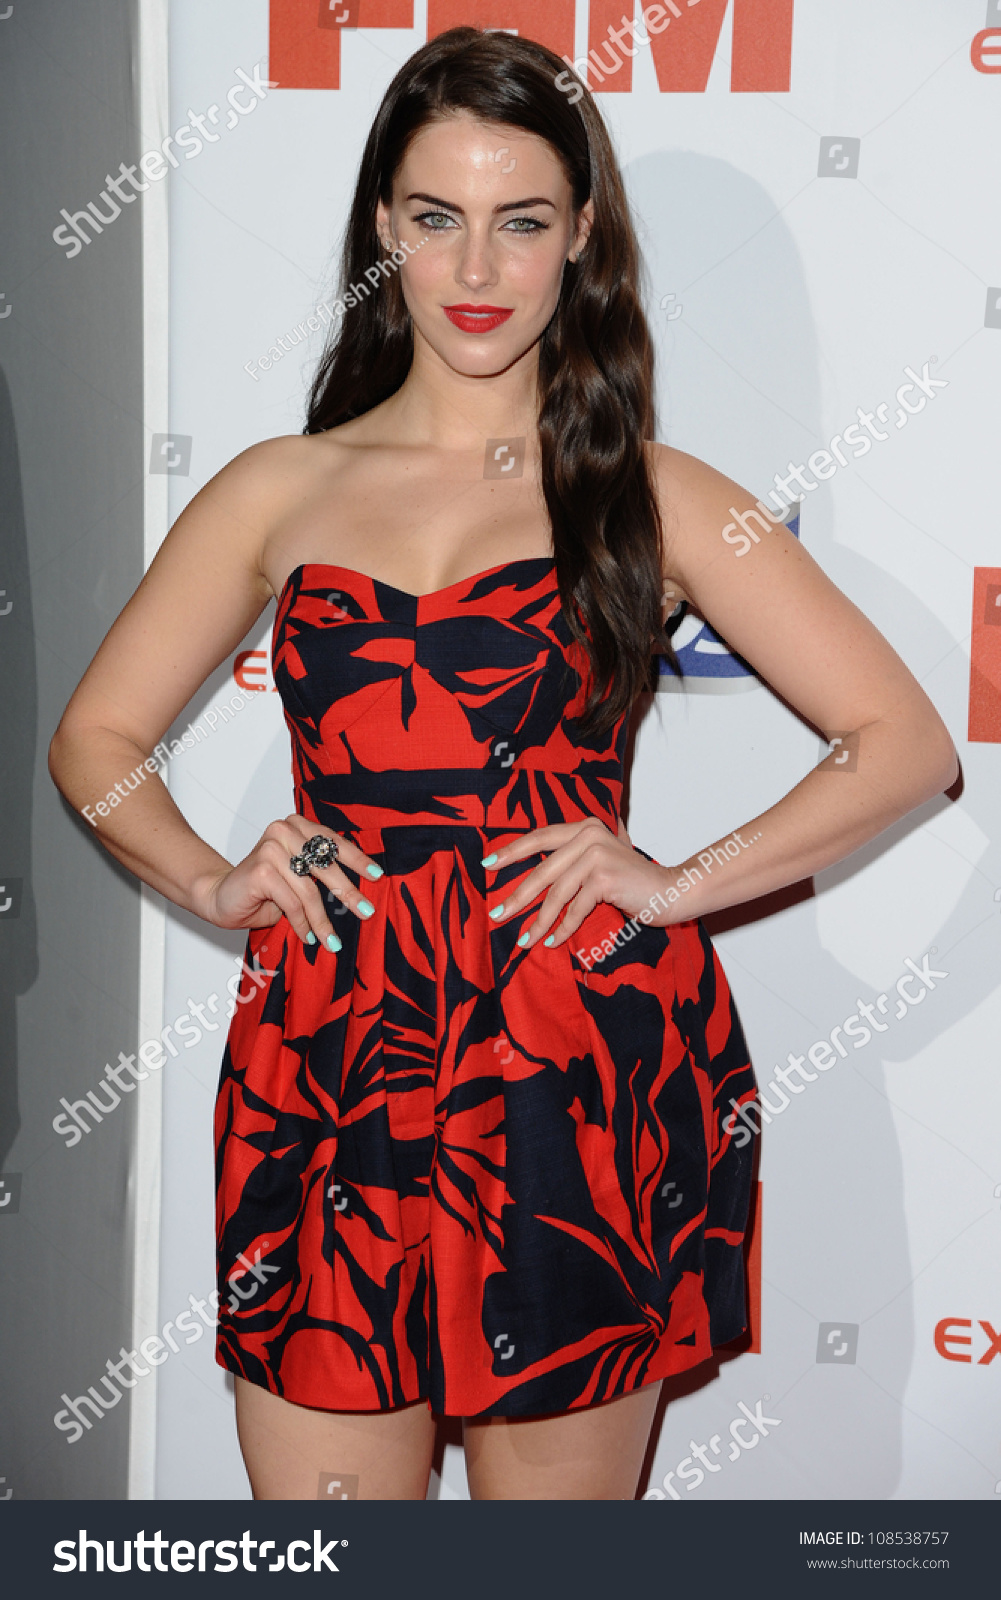 lowndes asian personals Jon lovitz and jessica lowndes, my mortal enemies, were interviewed by entertainment weekly on tuesday about the prank heard 'round the world (or, at least 'round the country): that they were dating and engaged.